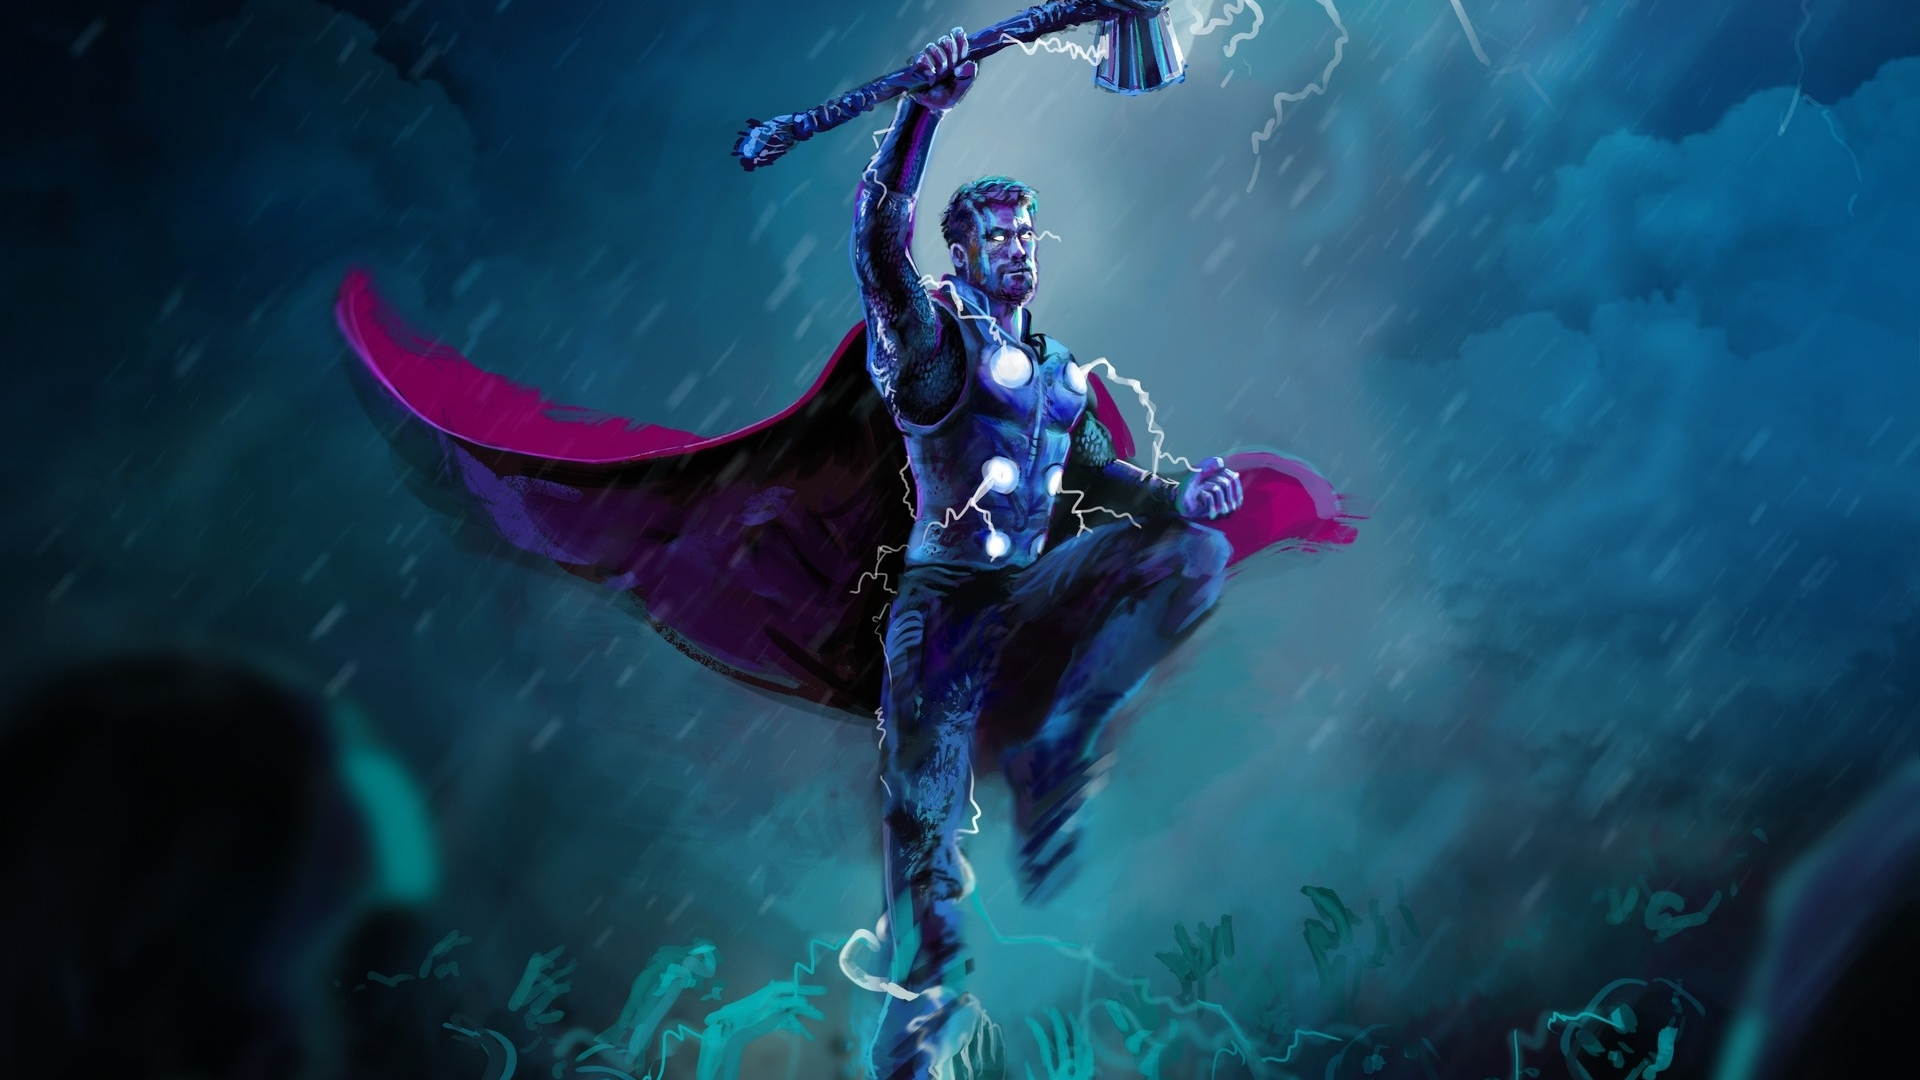 Thor Hd Wallpapers 1080p Download Fitrini S Wallpaper